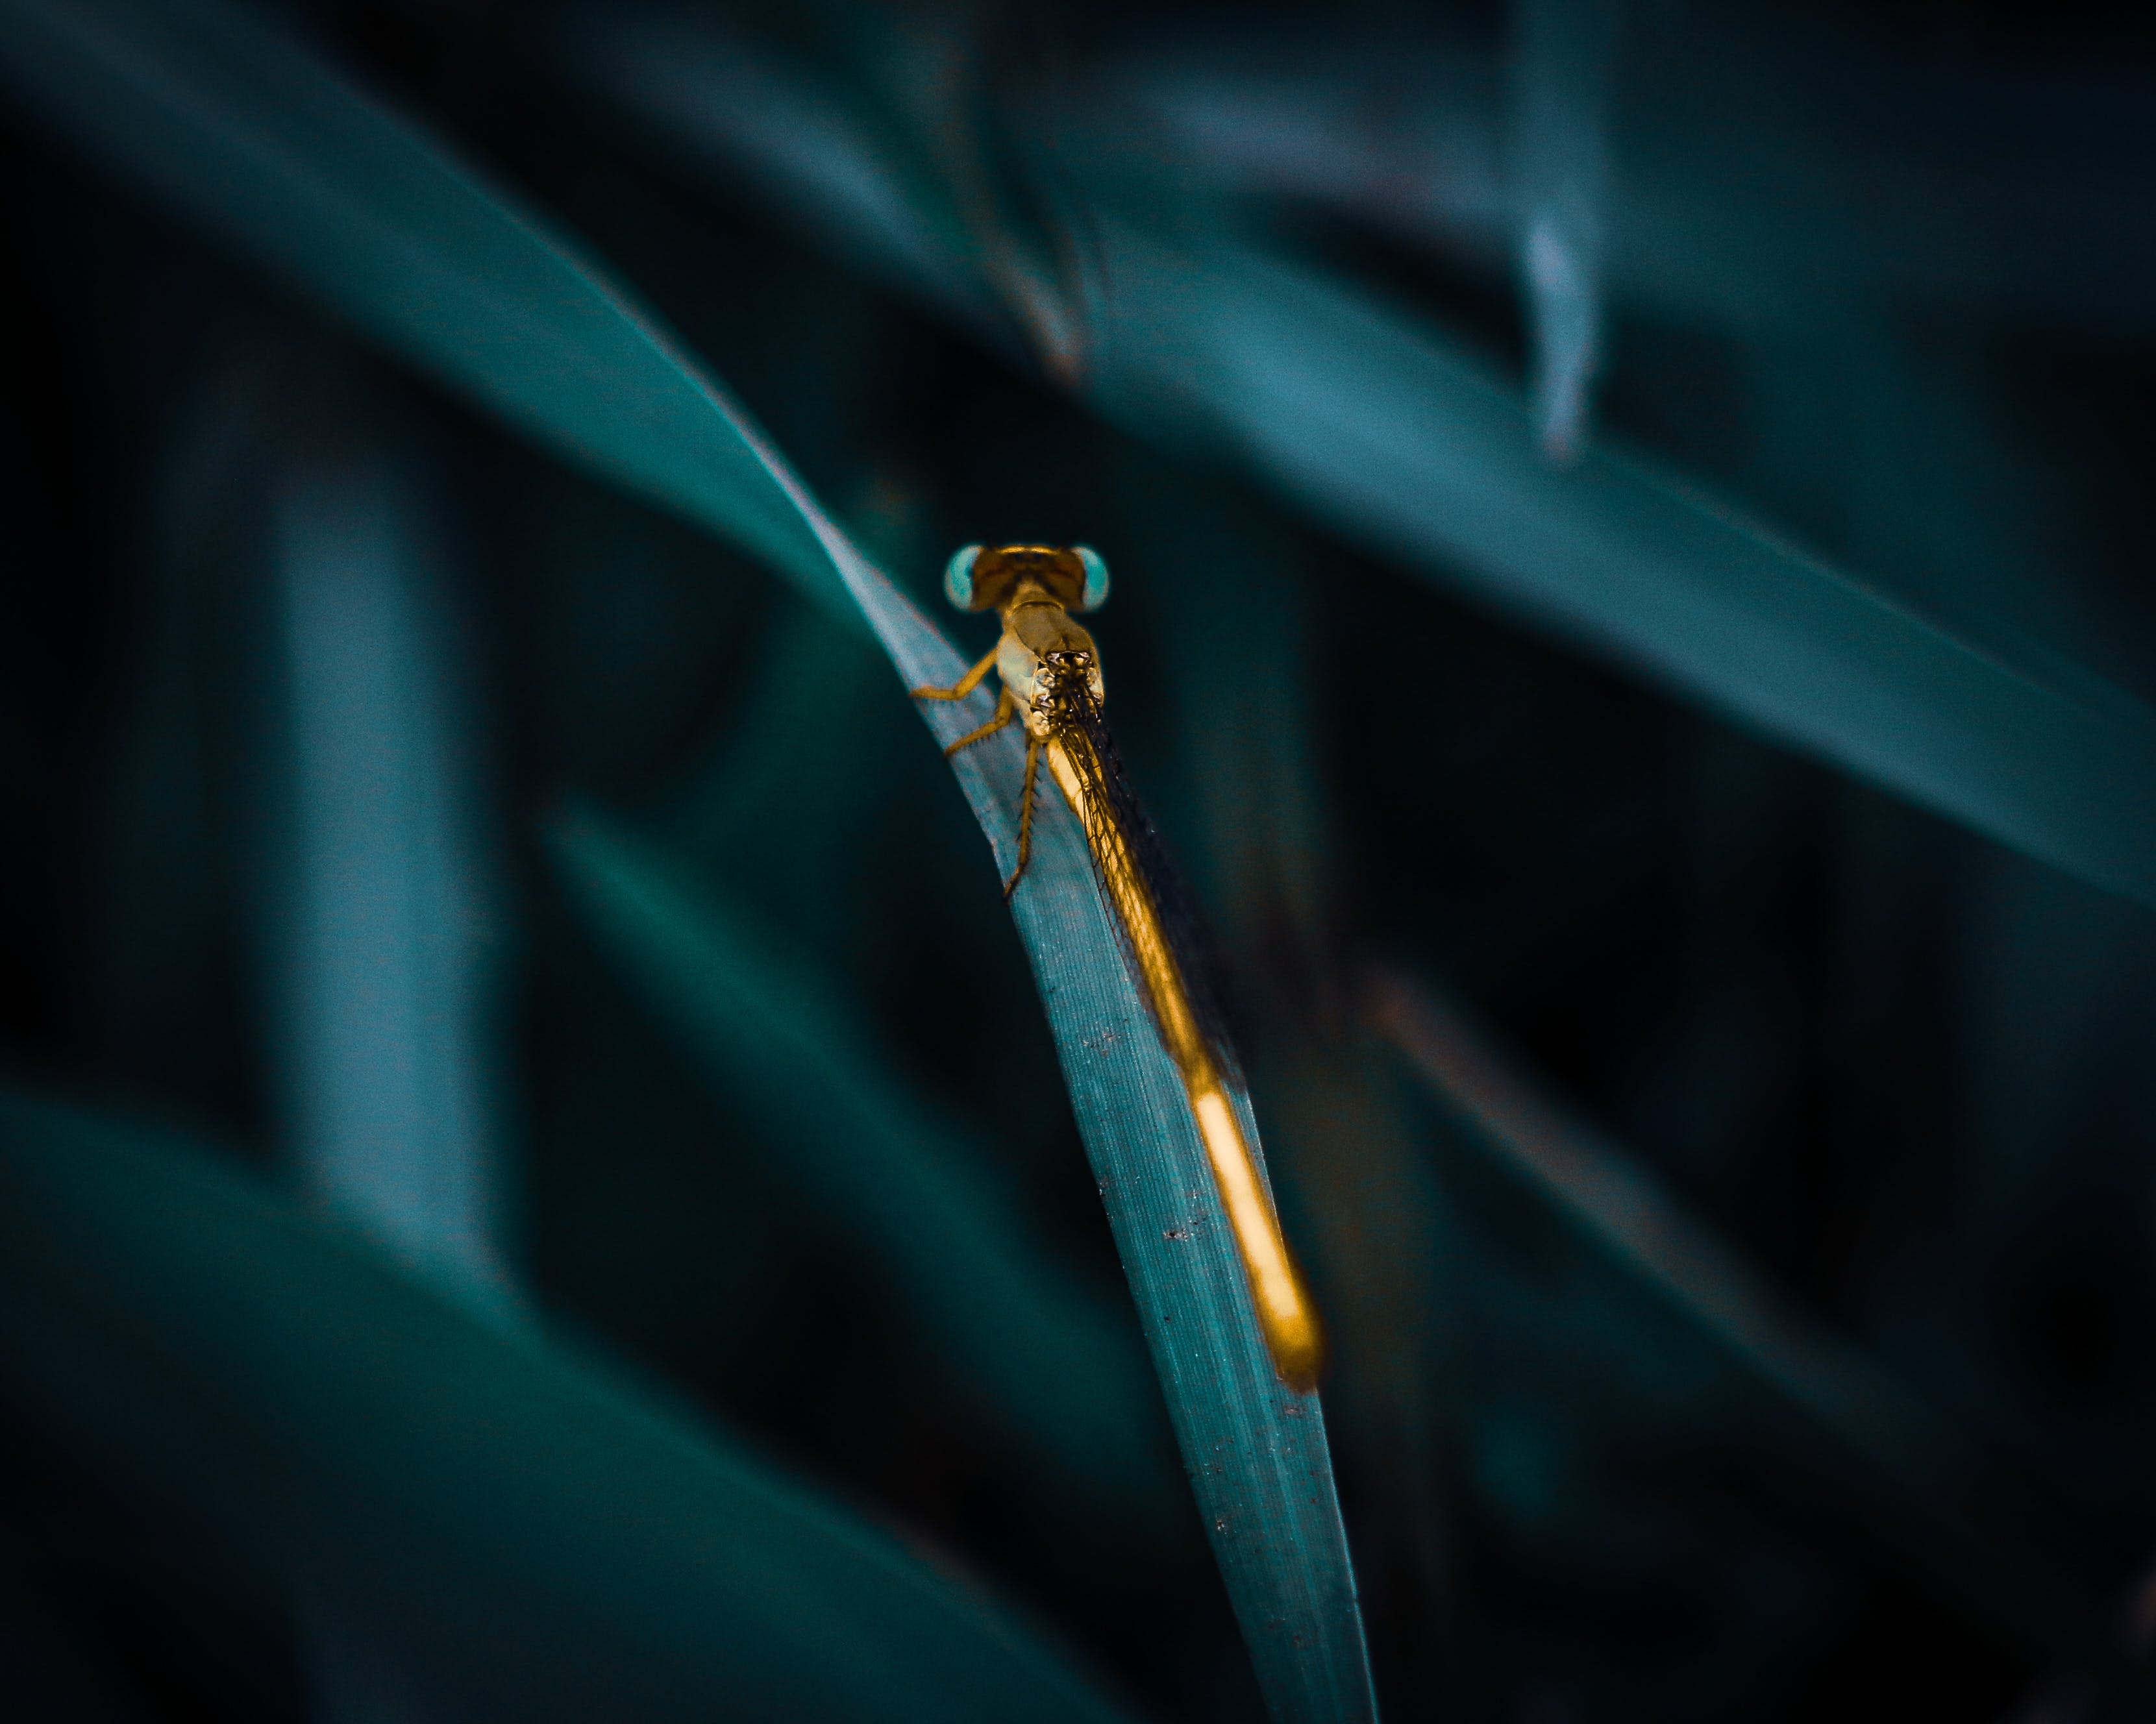 Selective Focus Photography of Gold Damselfly